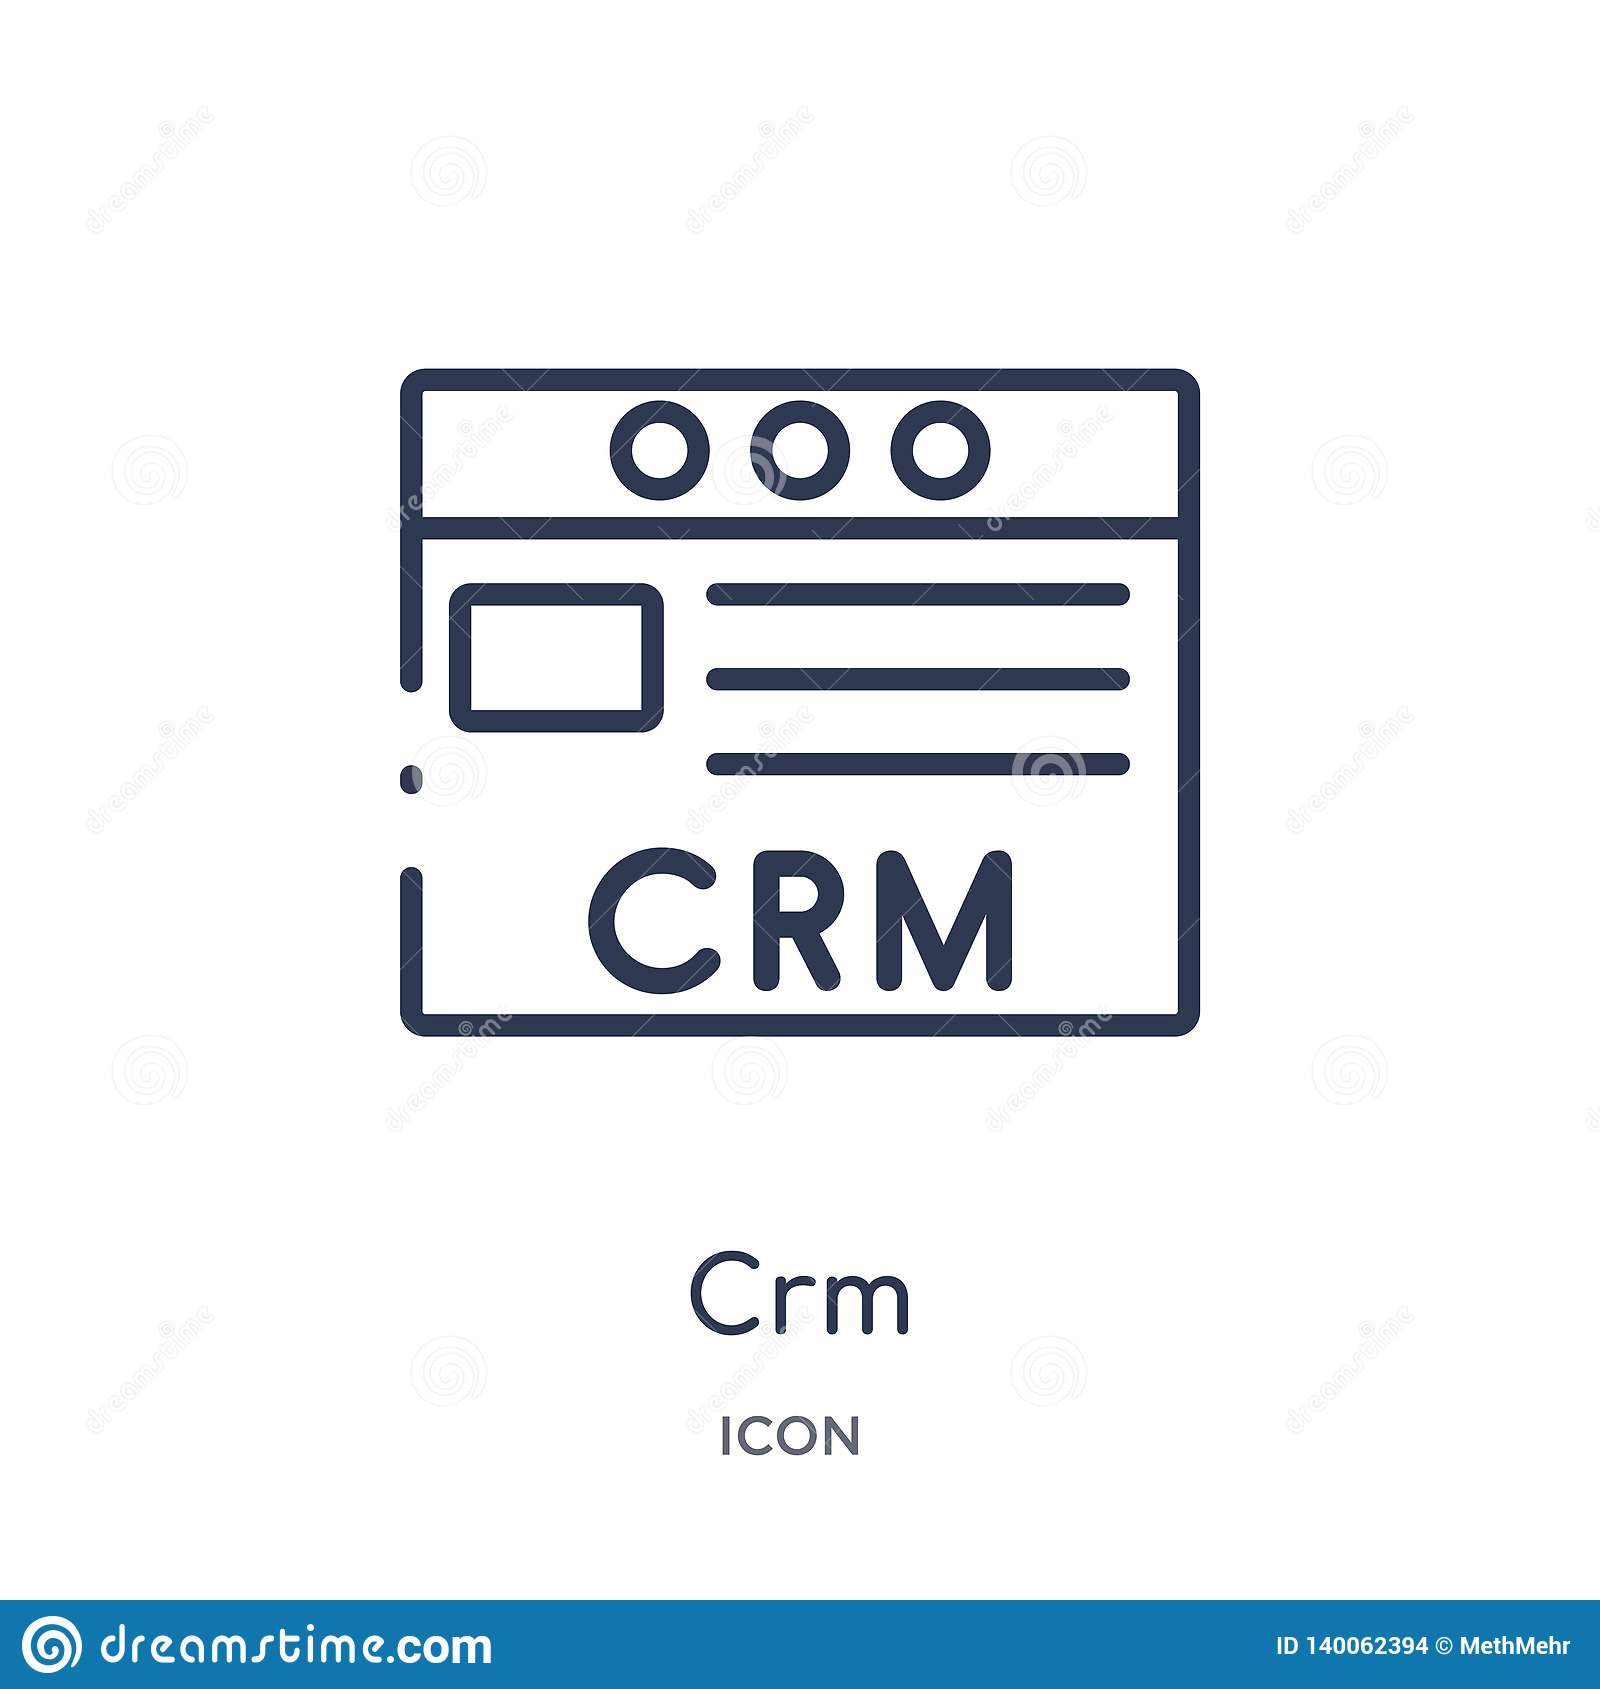 Linear crm icon from Marketing outline collection. Thin line crm icon isolated on white background. crm trendy illustration